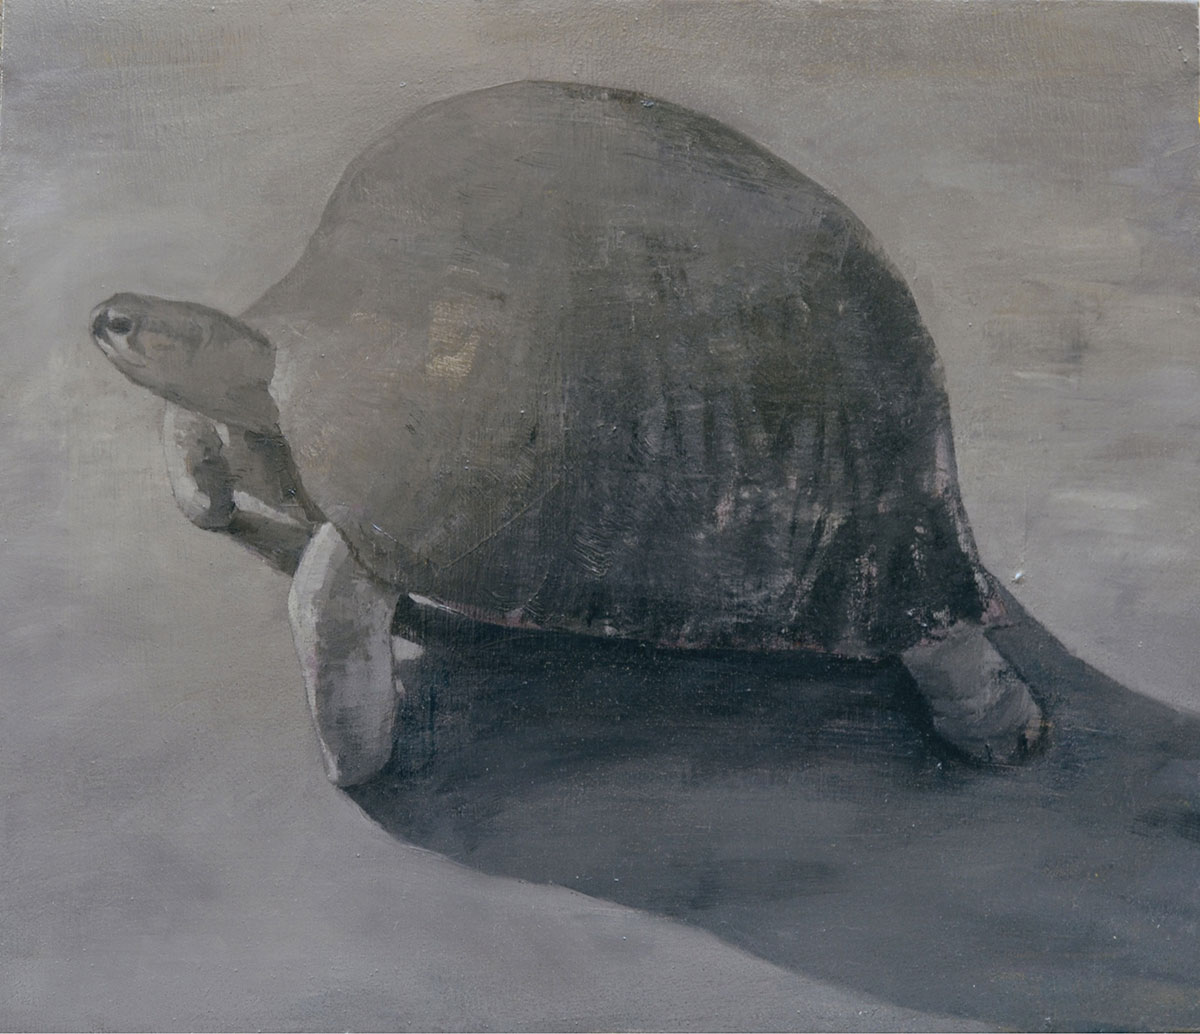 Javier Artica, The Shell Of The Tortoise. 2017, oil on canvas, 59 x 69 cm